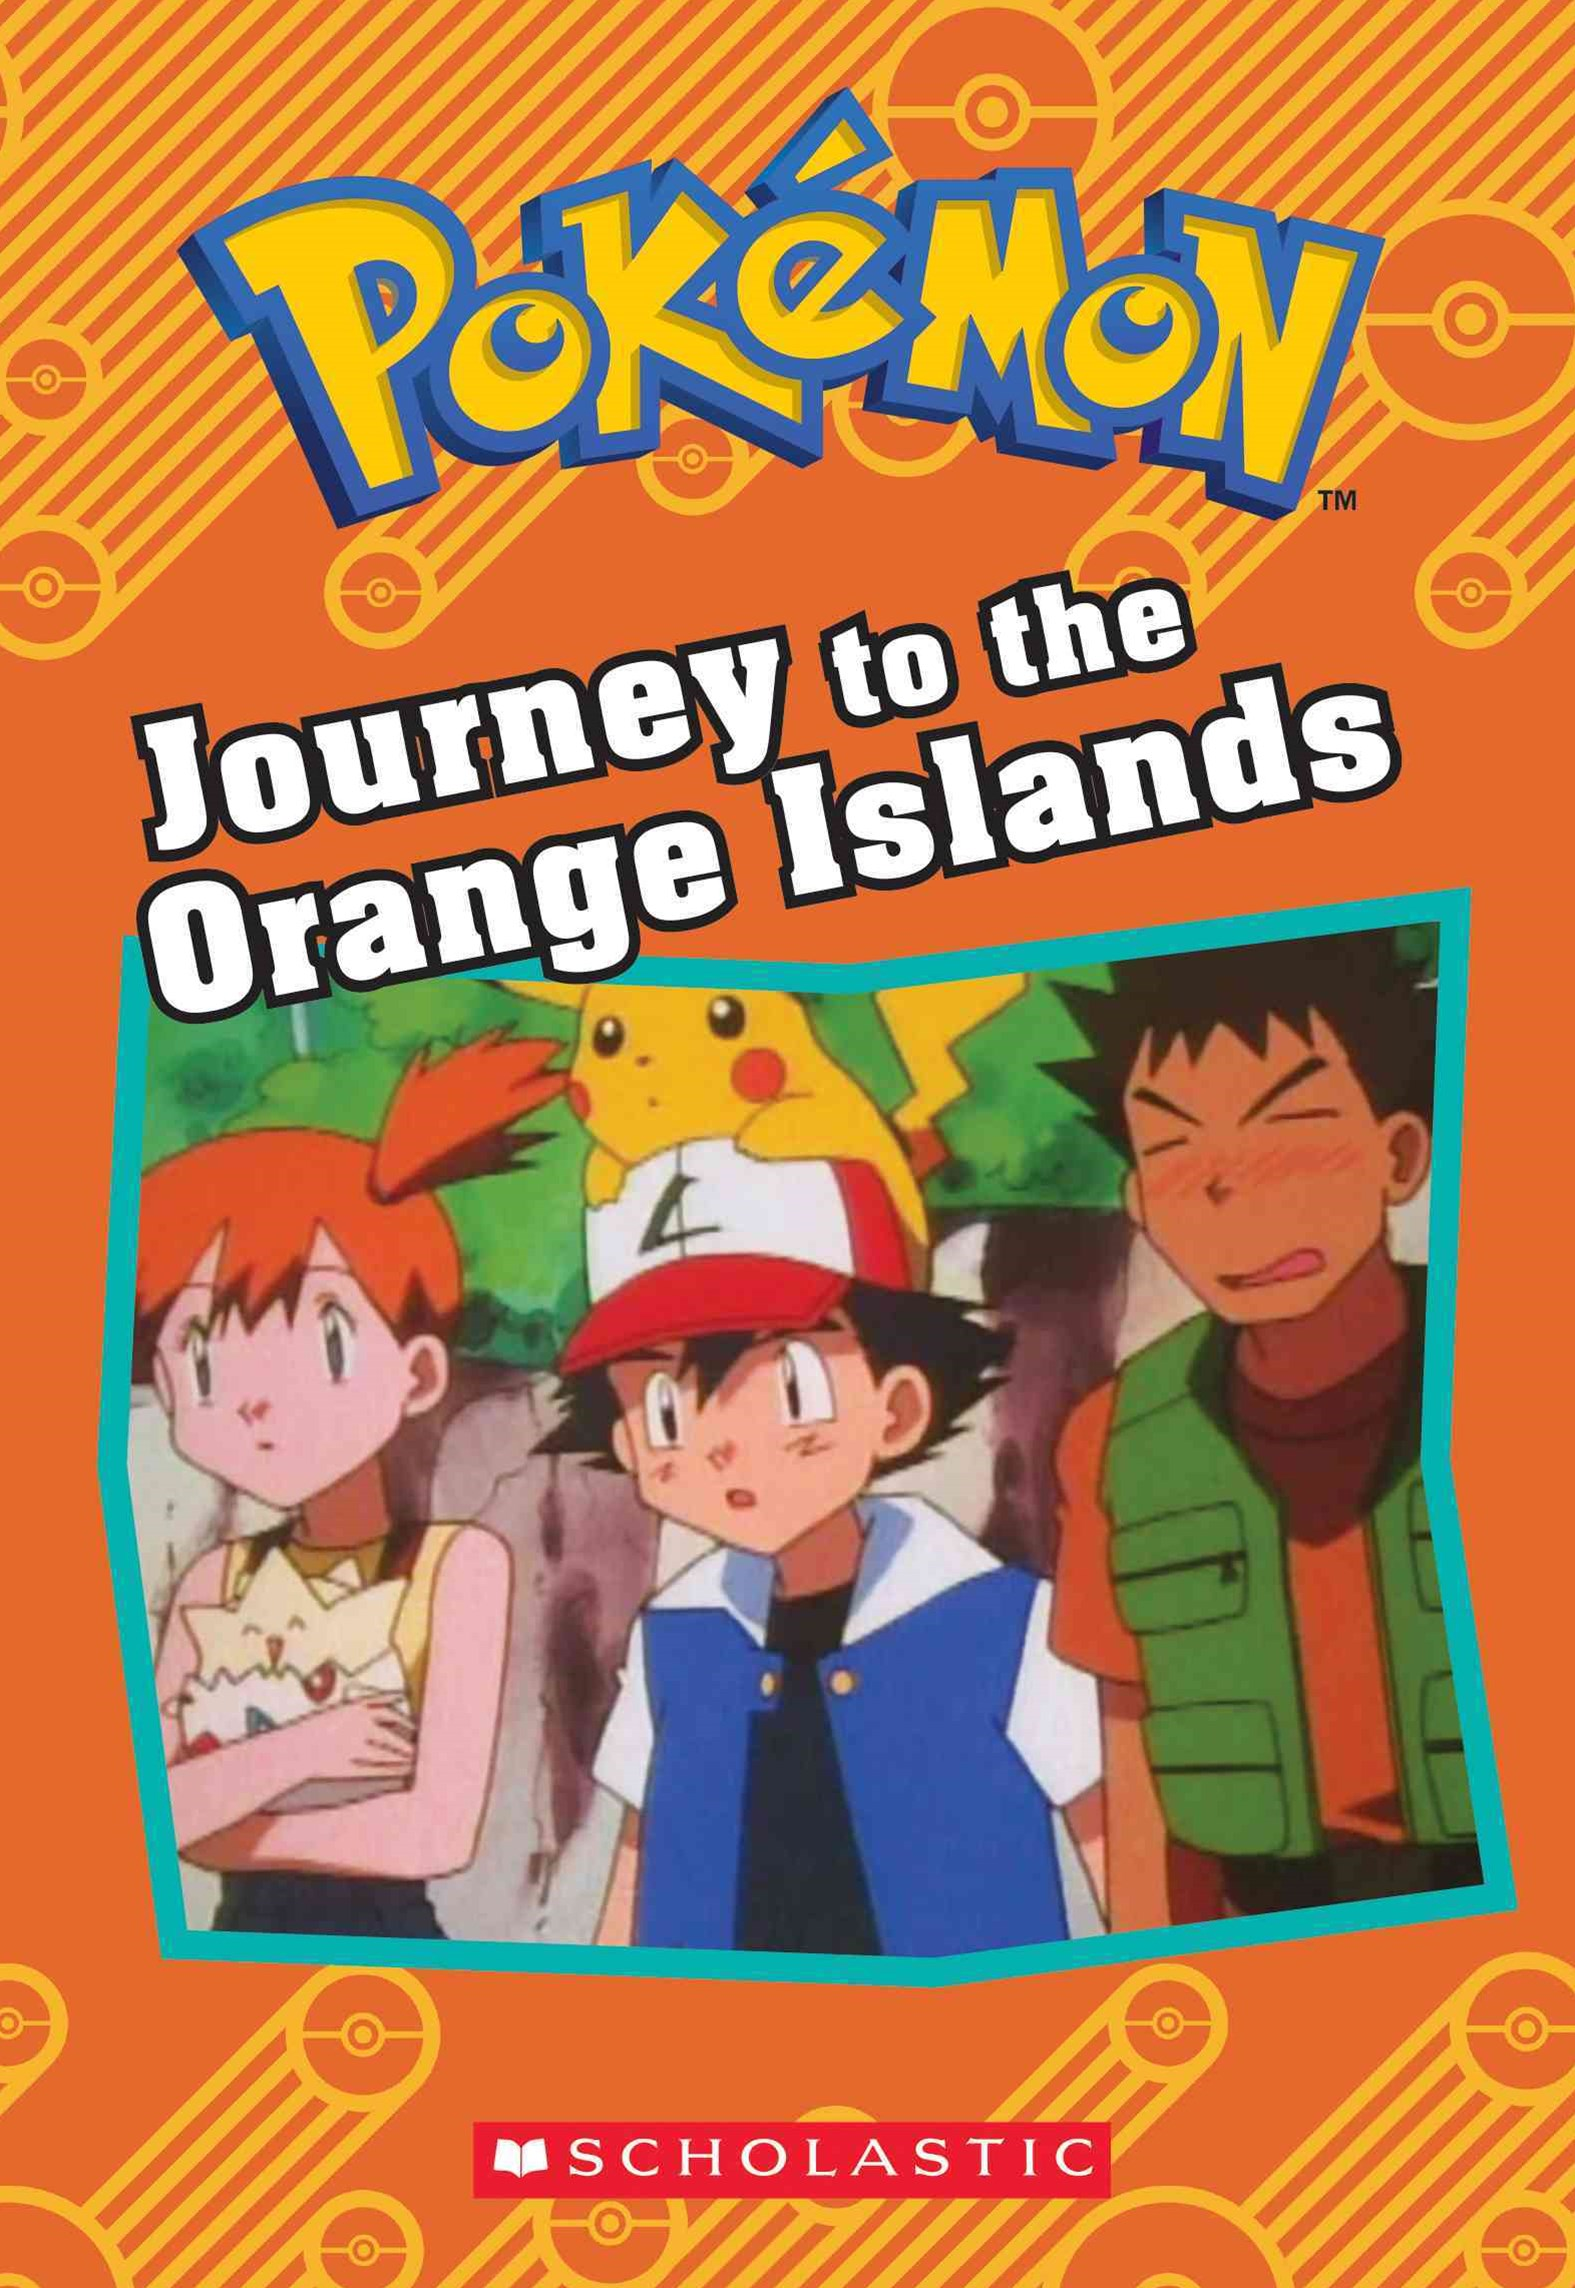 Pokémon: Journey to the Orange Islands